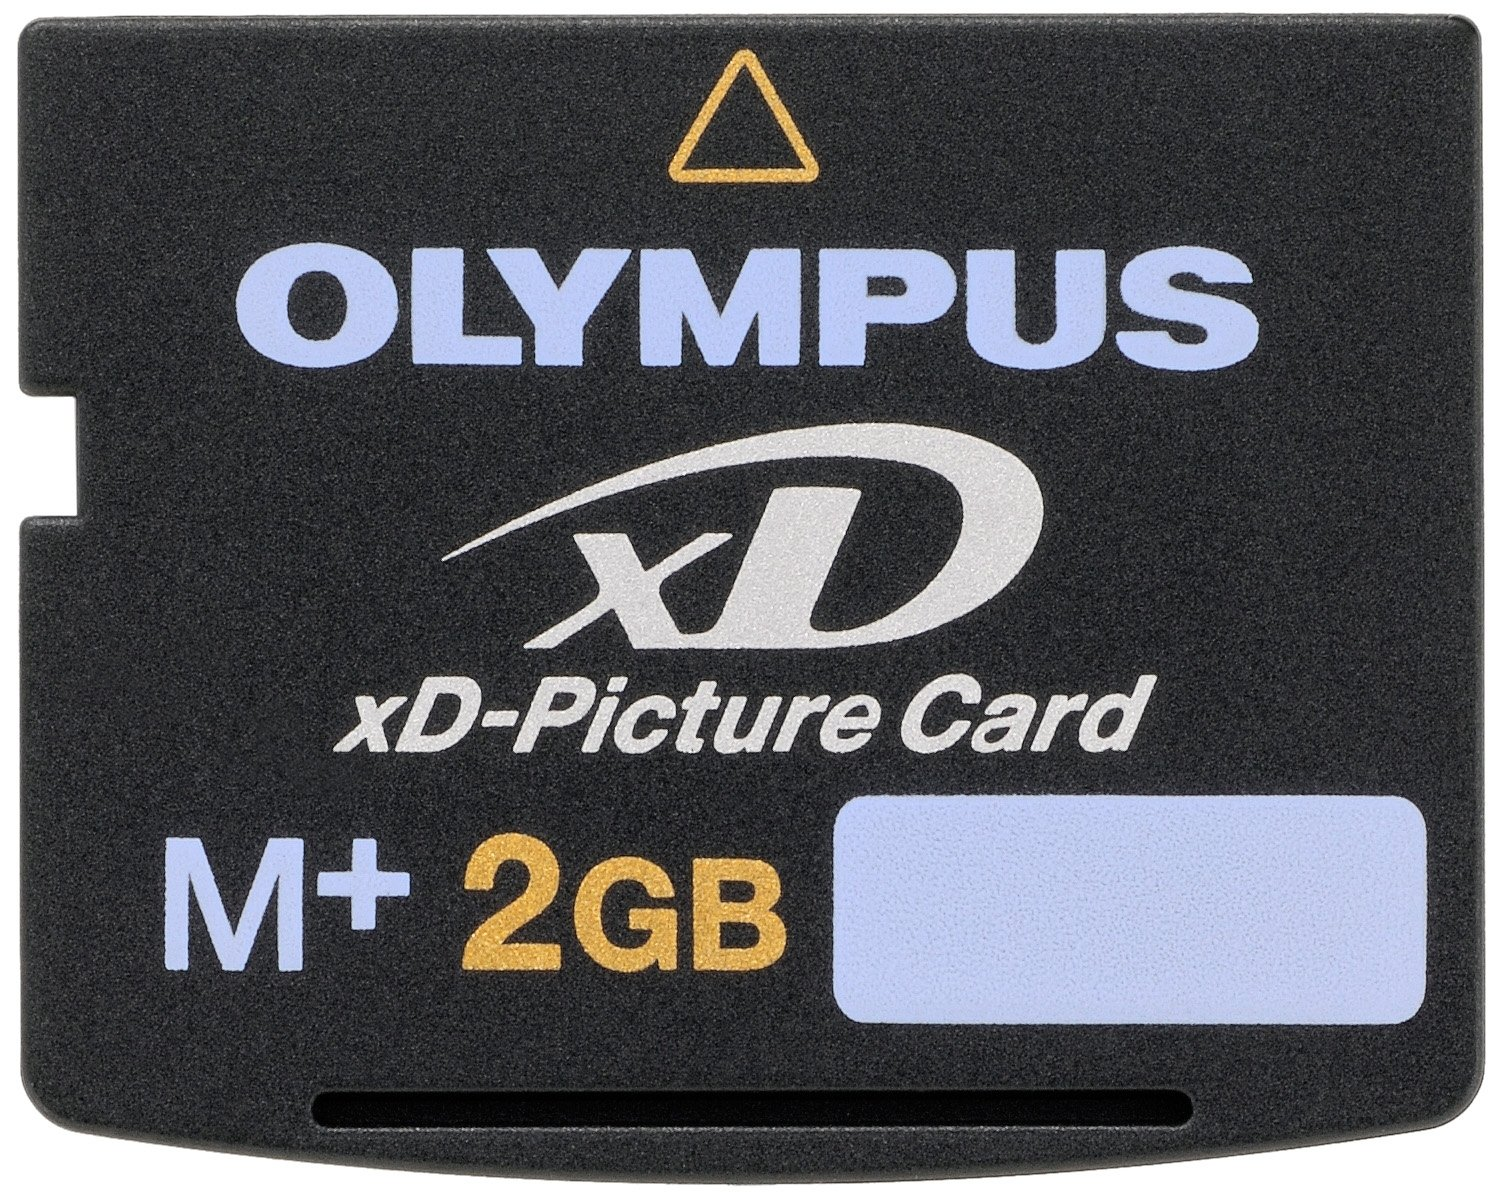 Olympus M+ 2 GB xD-PictureCard Flash Memory Card 2-Pack 202300 by Olympus